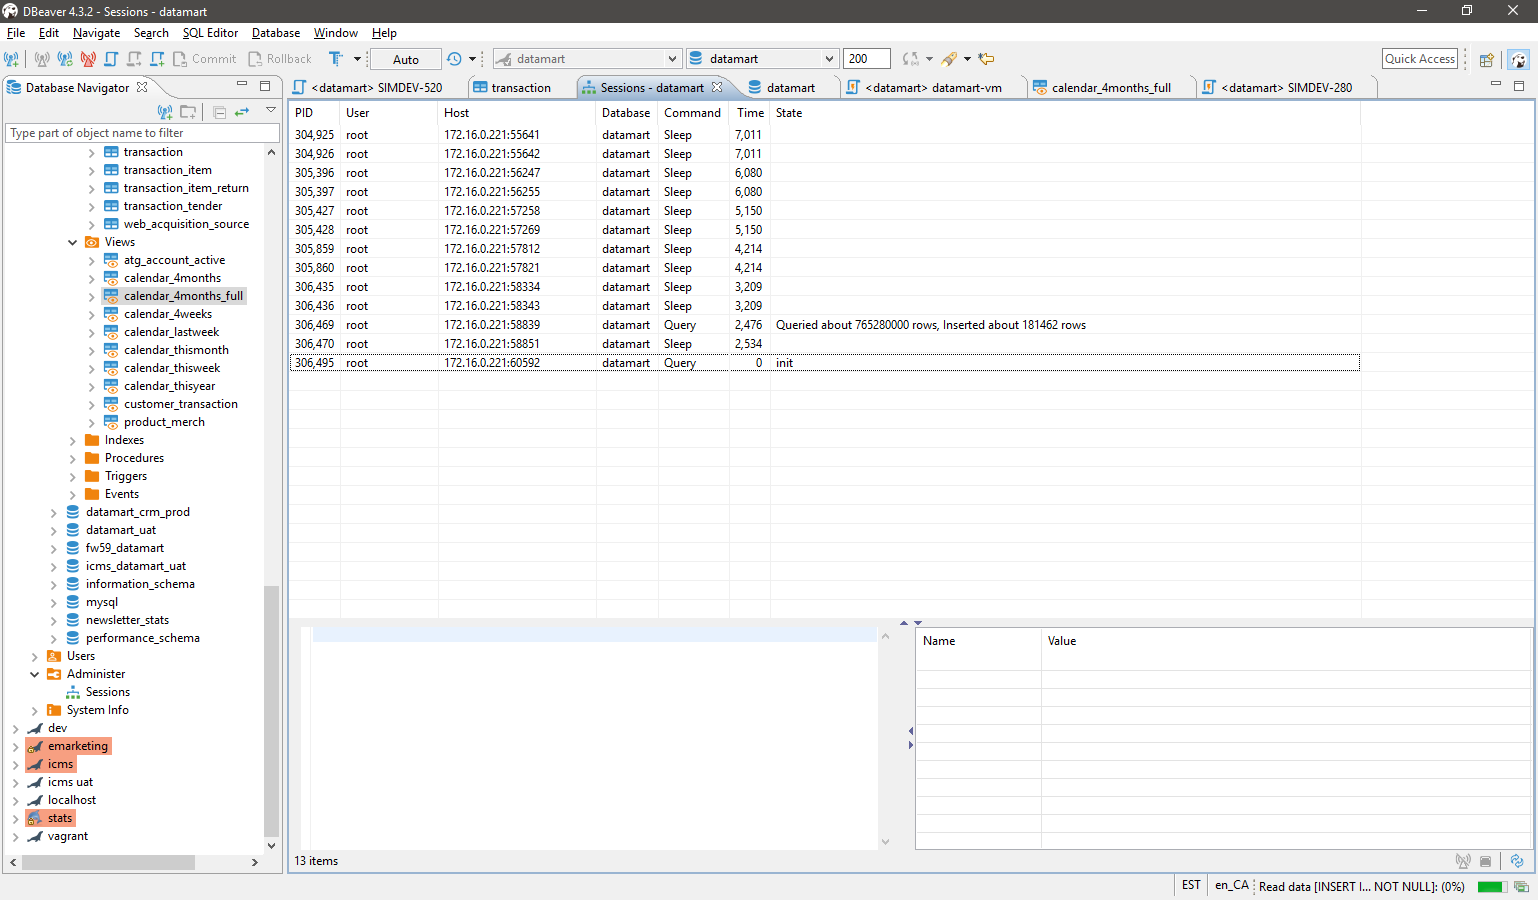 execute multiple query at the same time on the same database